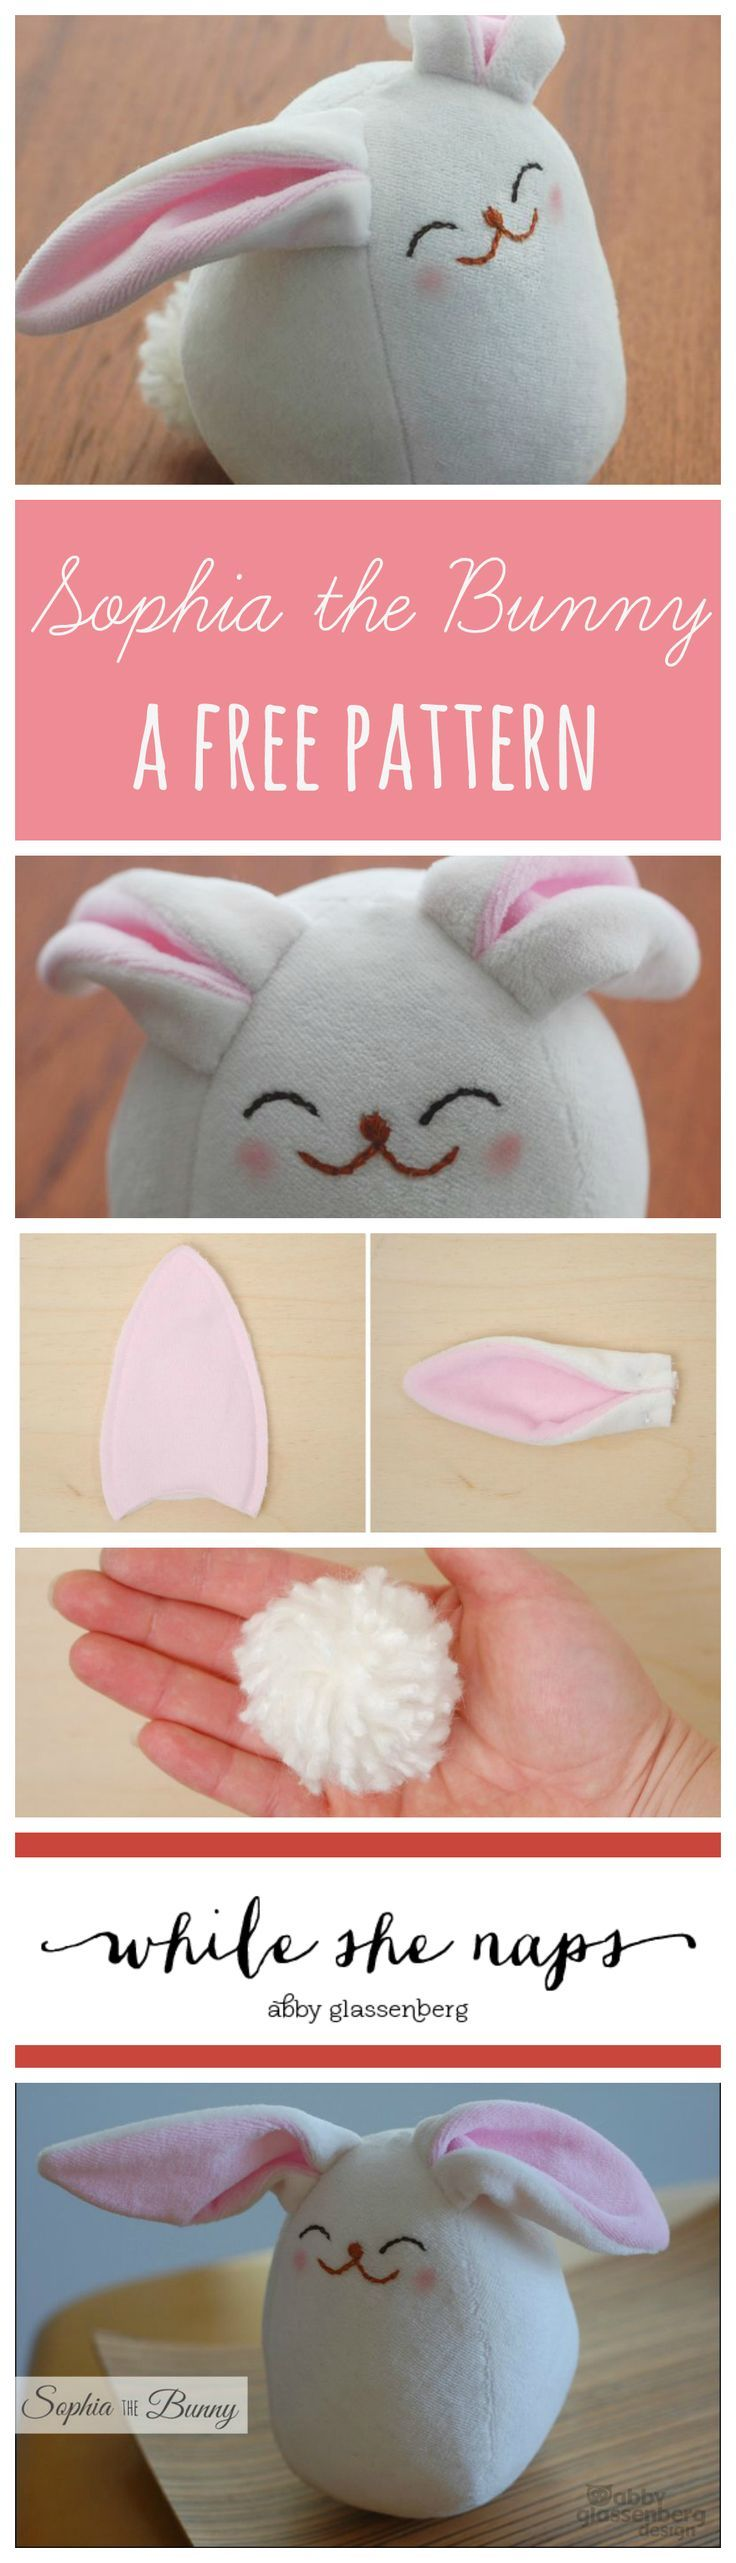 A free pattern for Sophia the Bunny - such a cute bunny softie sewing pattern!